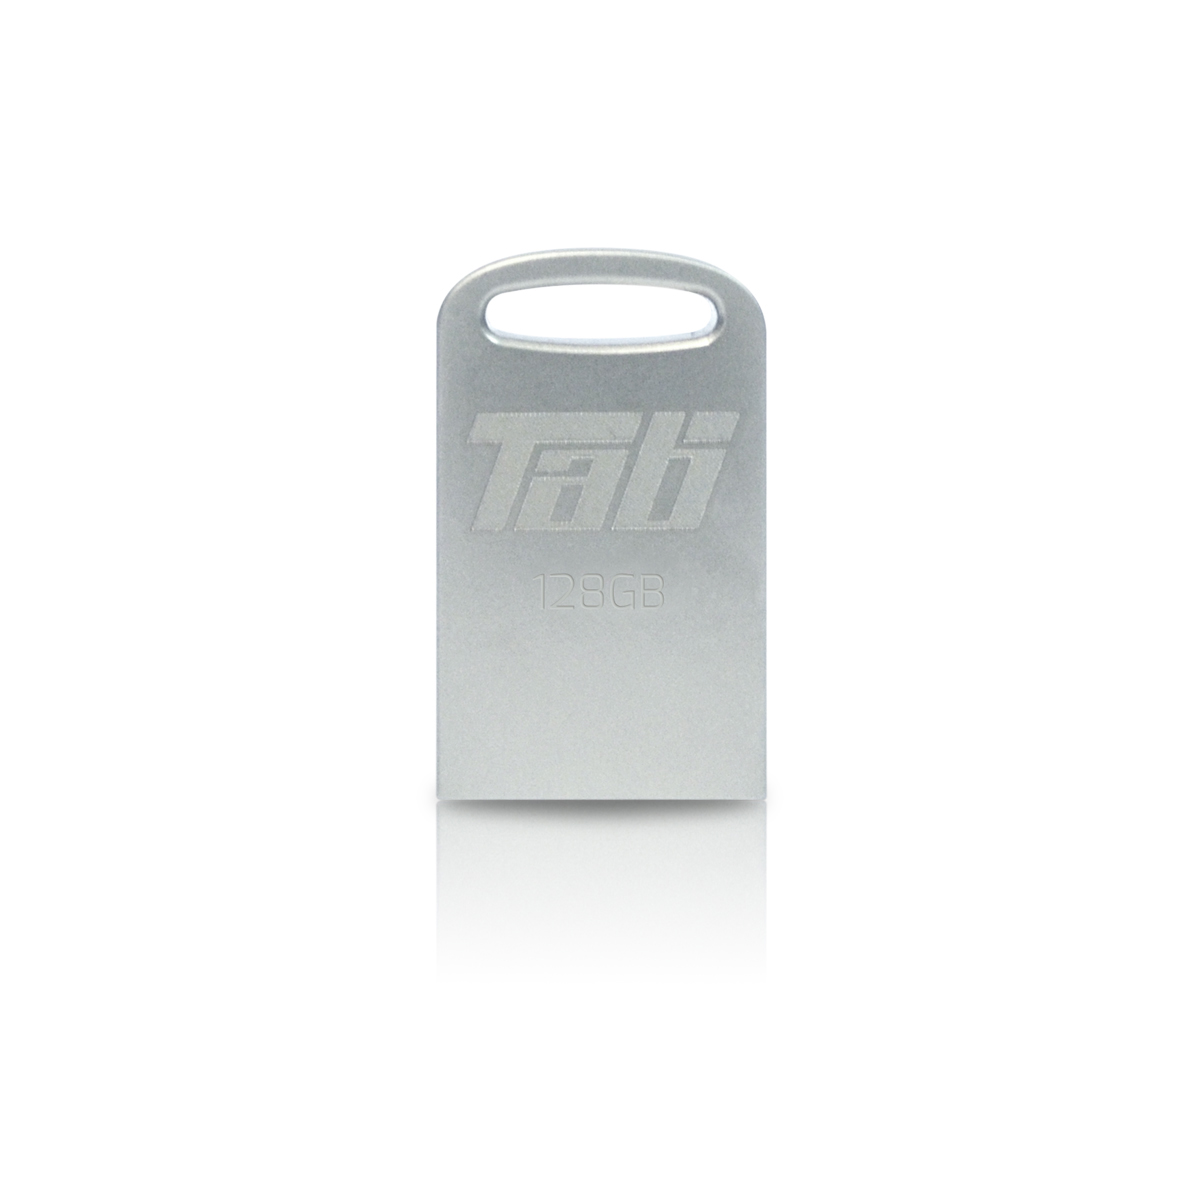 Patriot Tab 128GB USB 3.1 flashdisk, Gen1